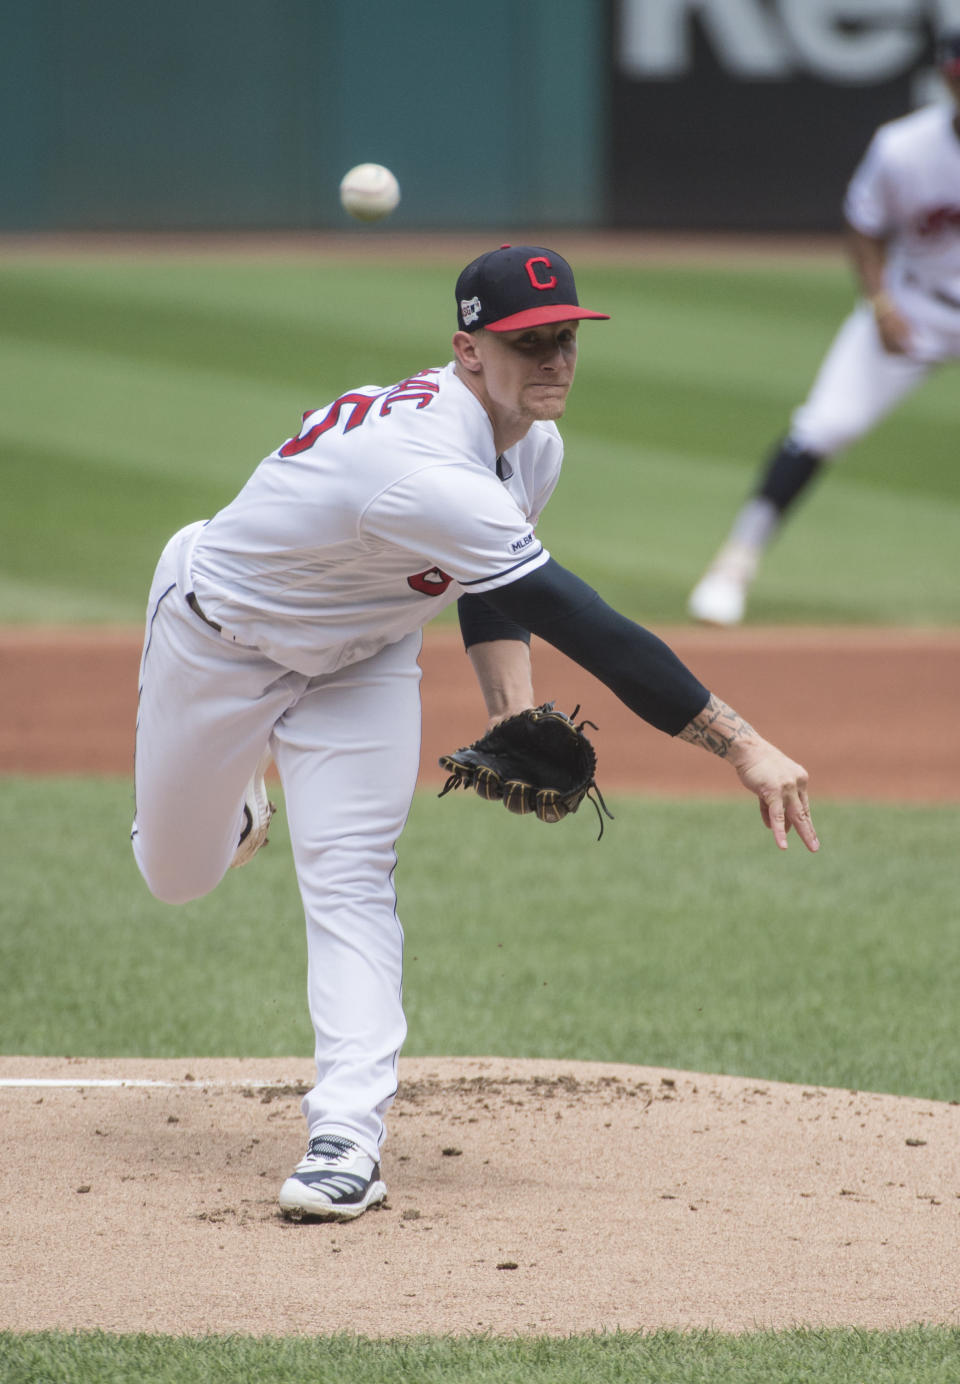 Cleveland Indians starting pitcher Zach Plesac delivers to Texas Rangers' Shin-Soo Choo during the first inning of the first game of a baseball doubleheader in Cleveland, Wednesday, Aug. 7, 2019. (AP Photo/Phil Long)